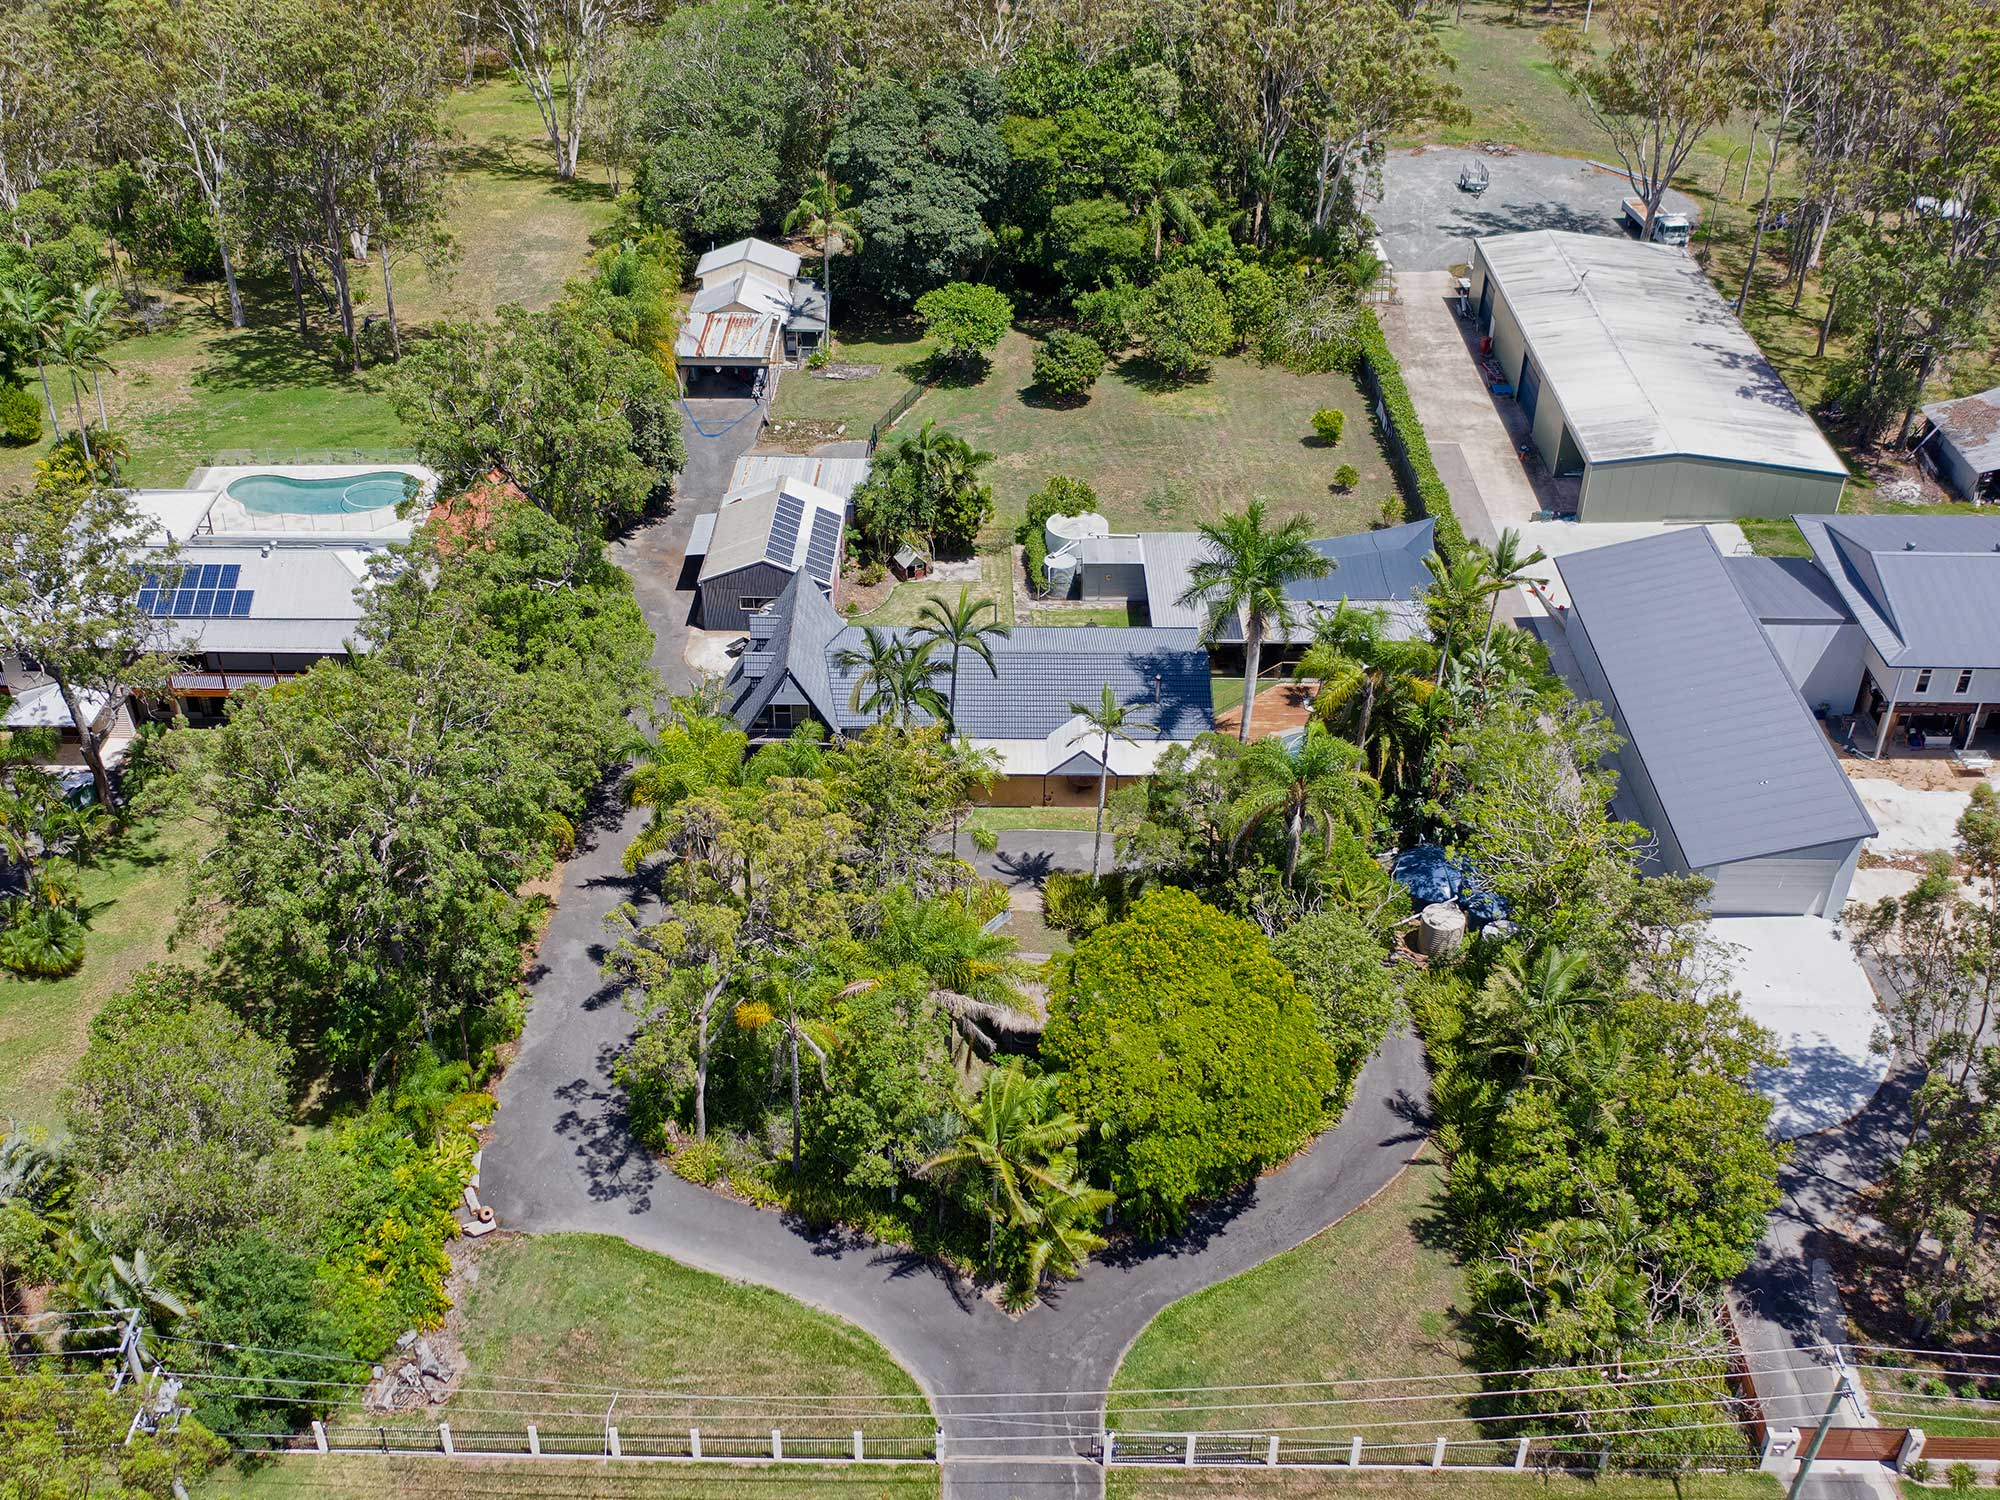 Acreage Photography Brisbane & Surrounds - a new home for sale at Burbank